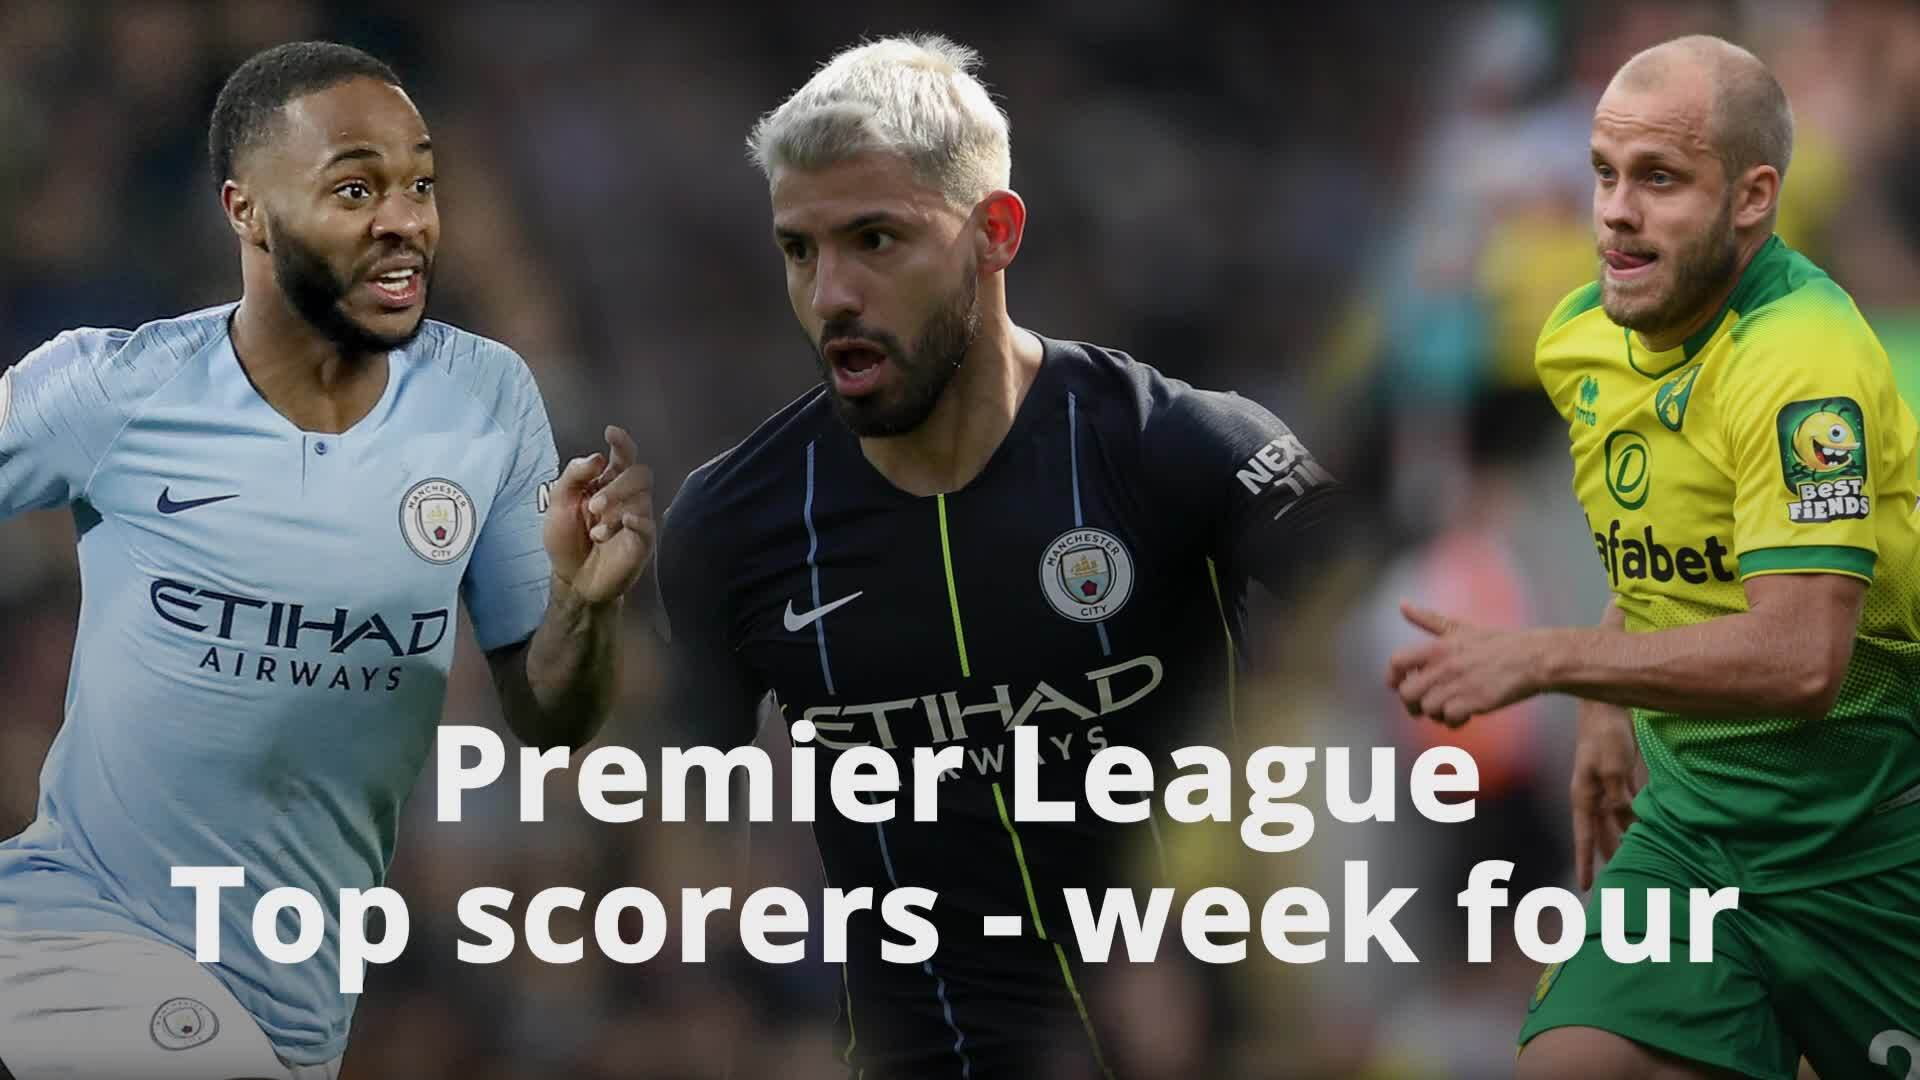 Premier League top scorers: Golden Boot goal standings for